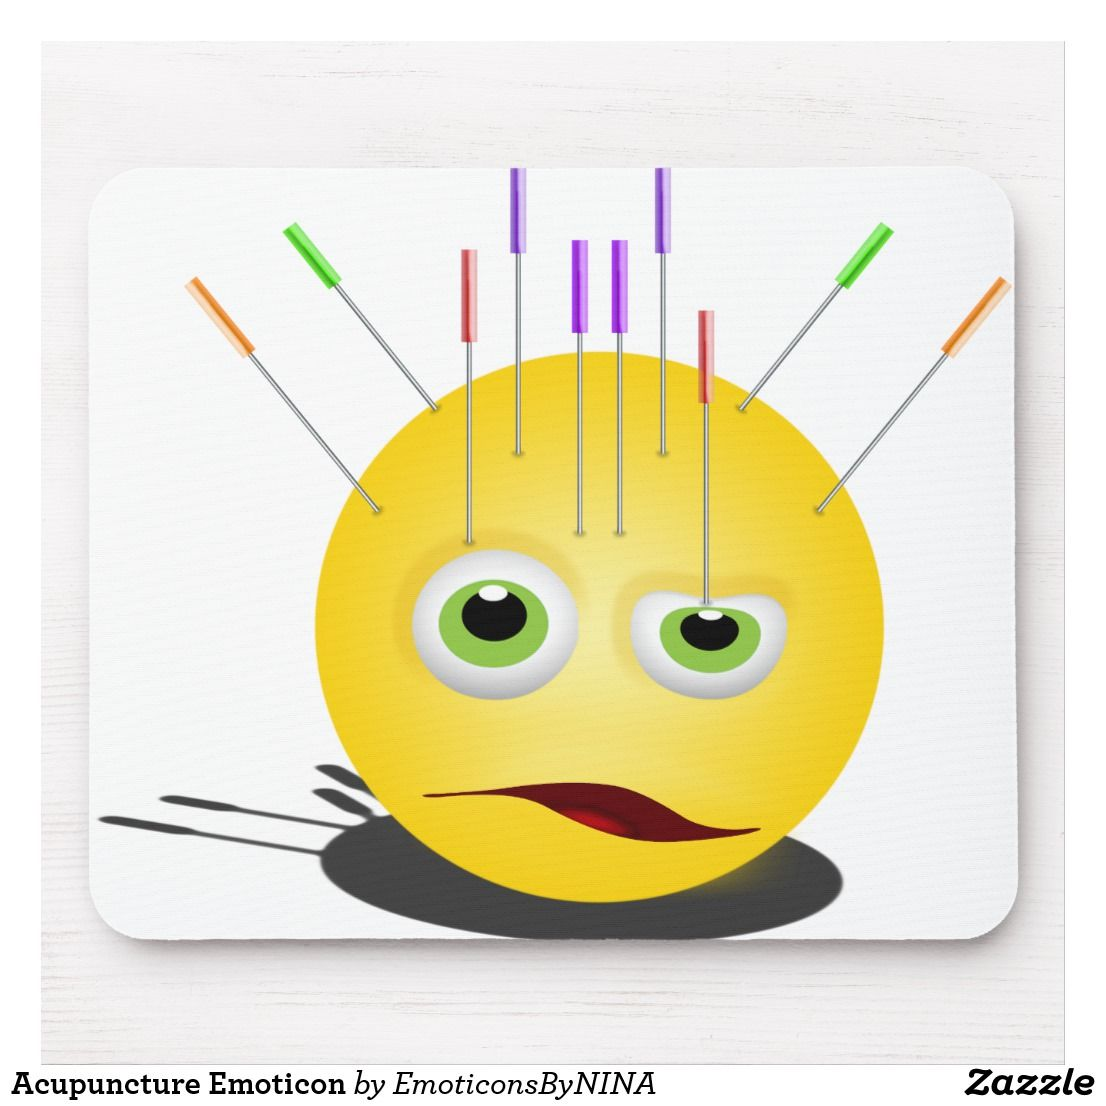 Acupuncture Emoticon Mouse Pad | Zazzle com | My Art on Zazzle